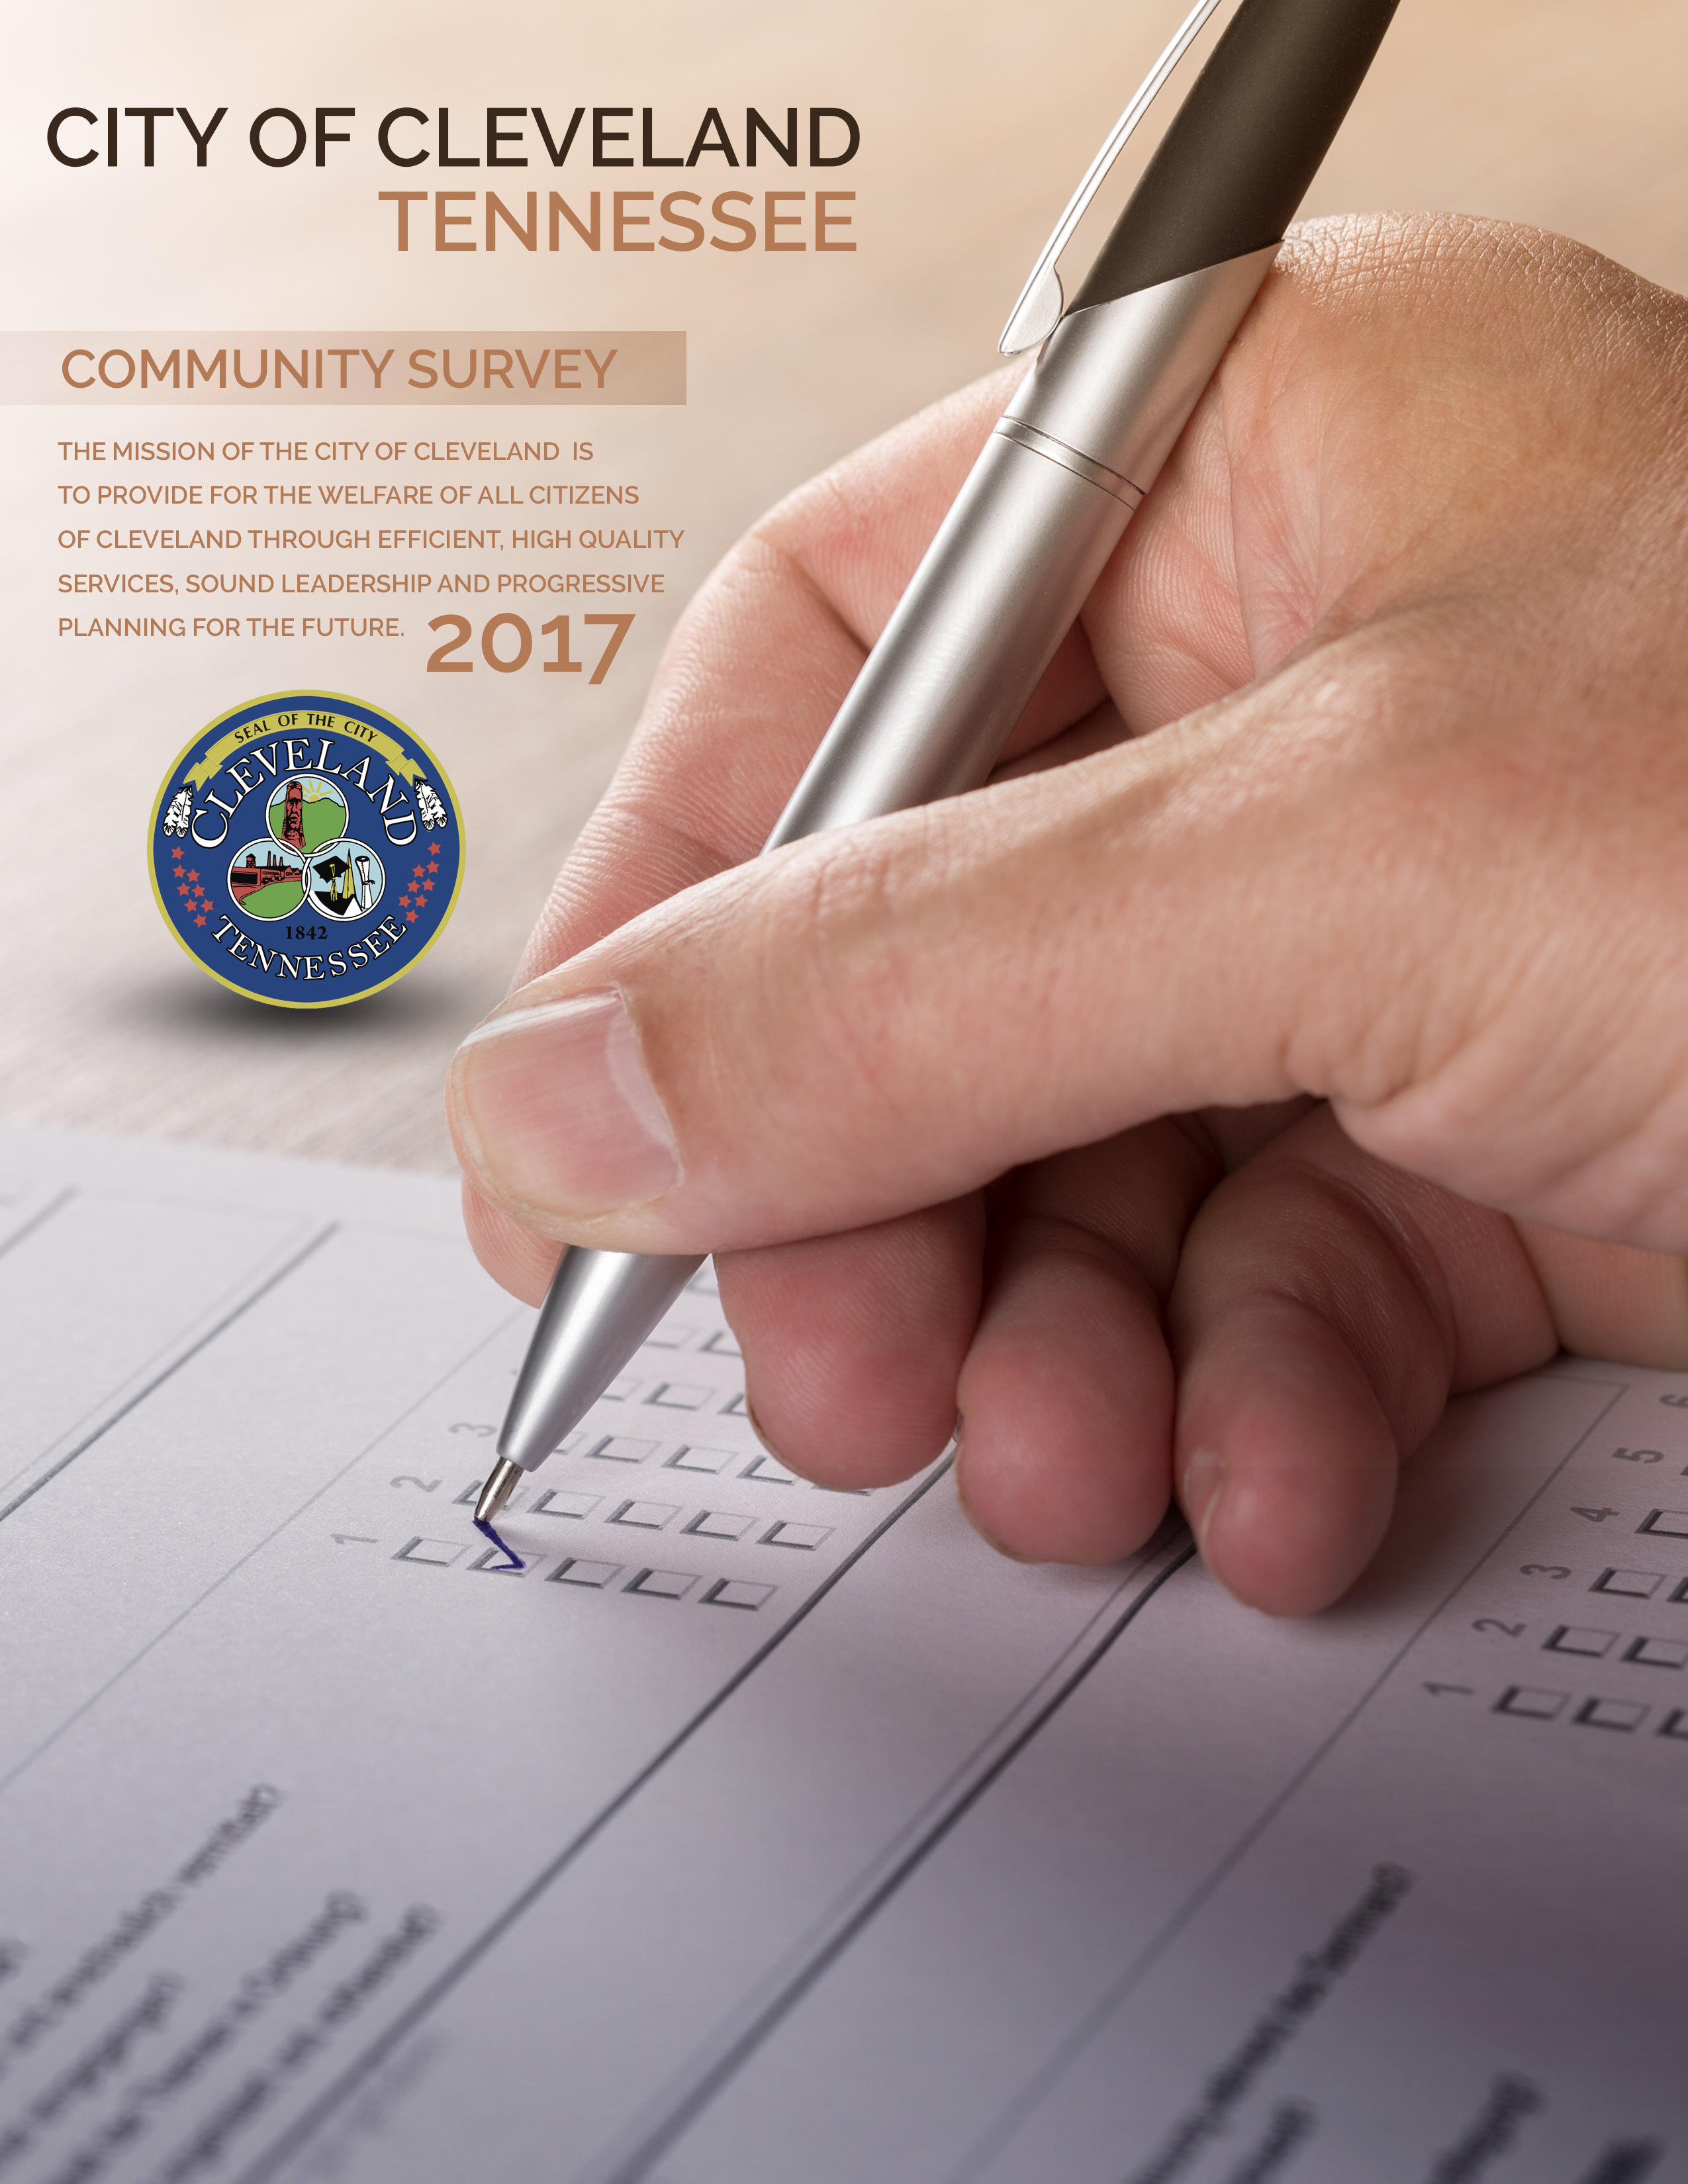 Community Survey Cover.jpg Opens in new window